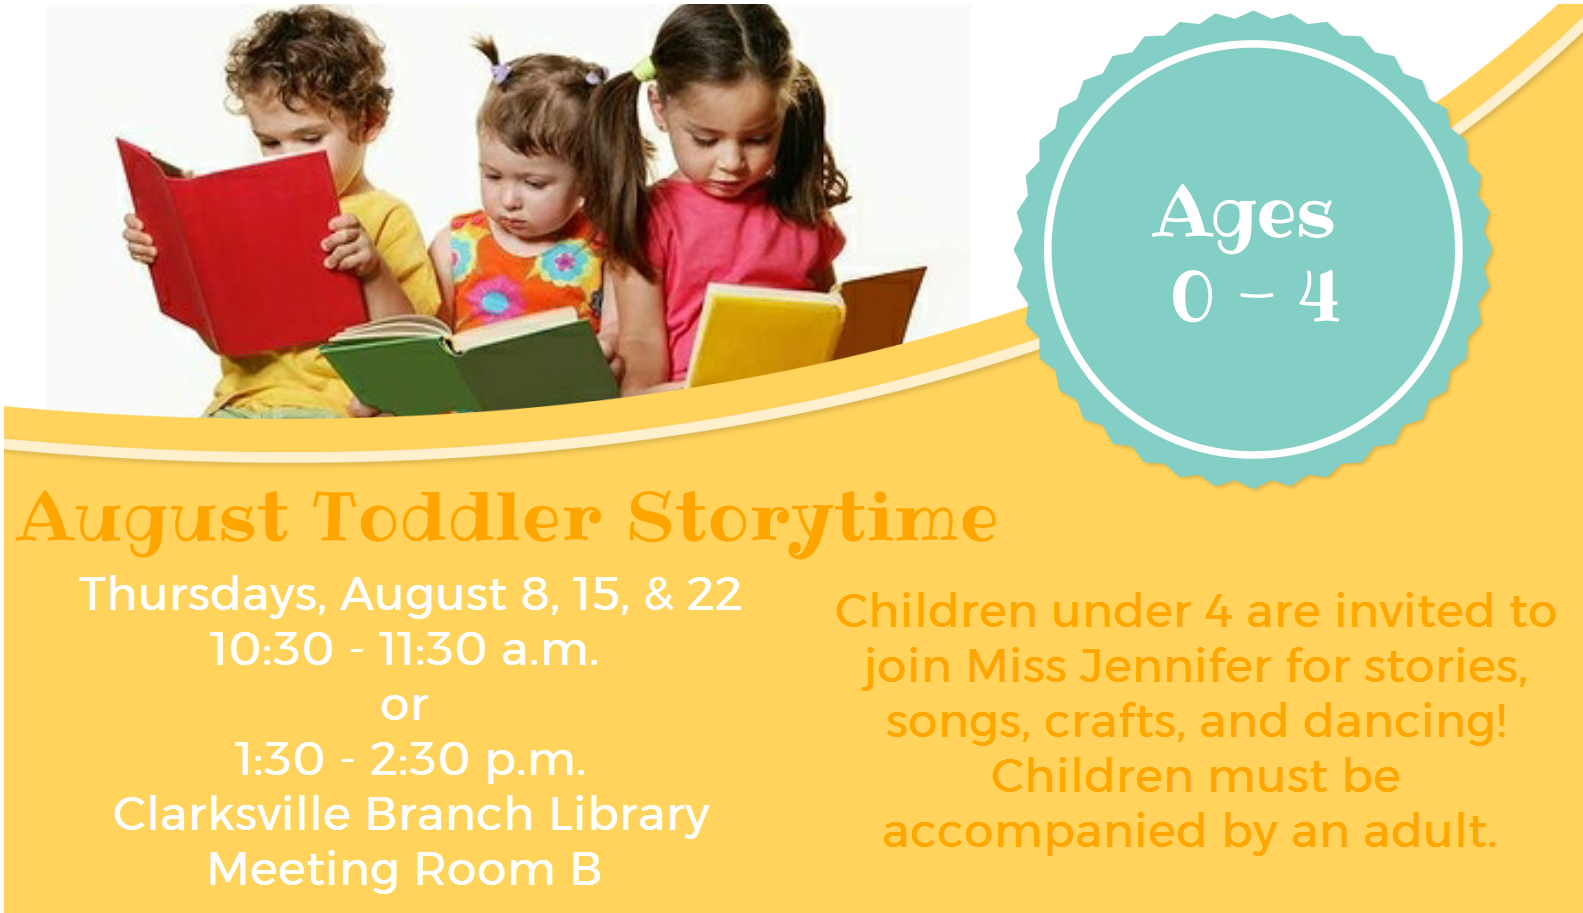 Flyer for the August 22nd Toddler Storytime